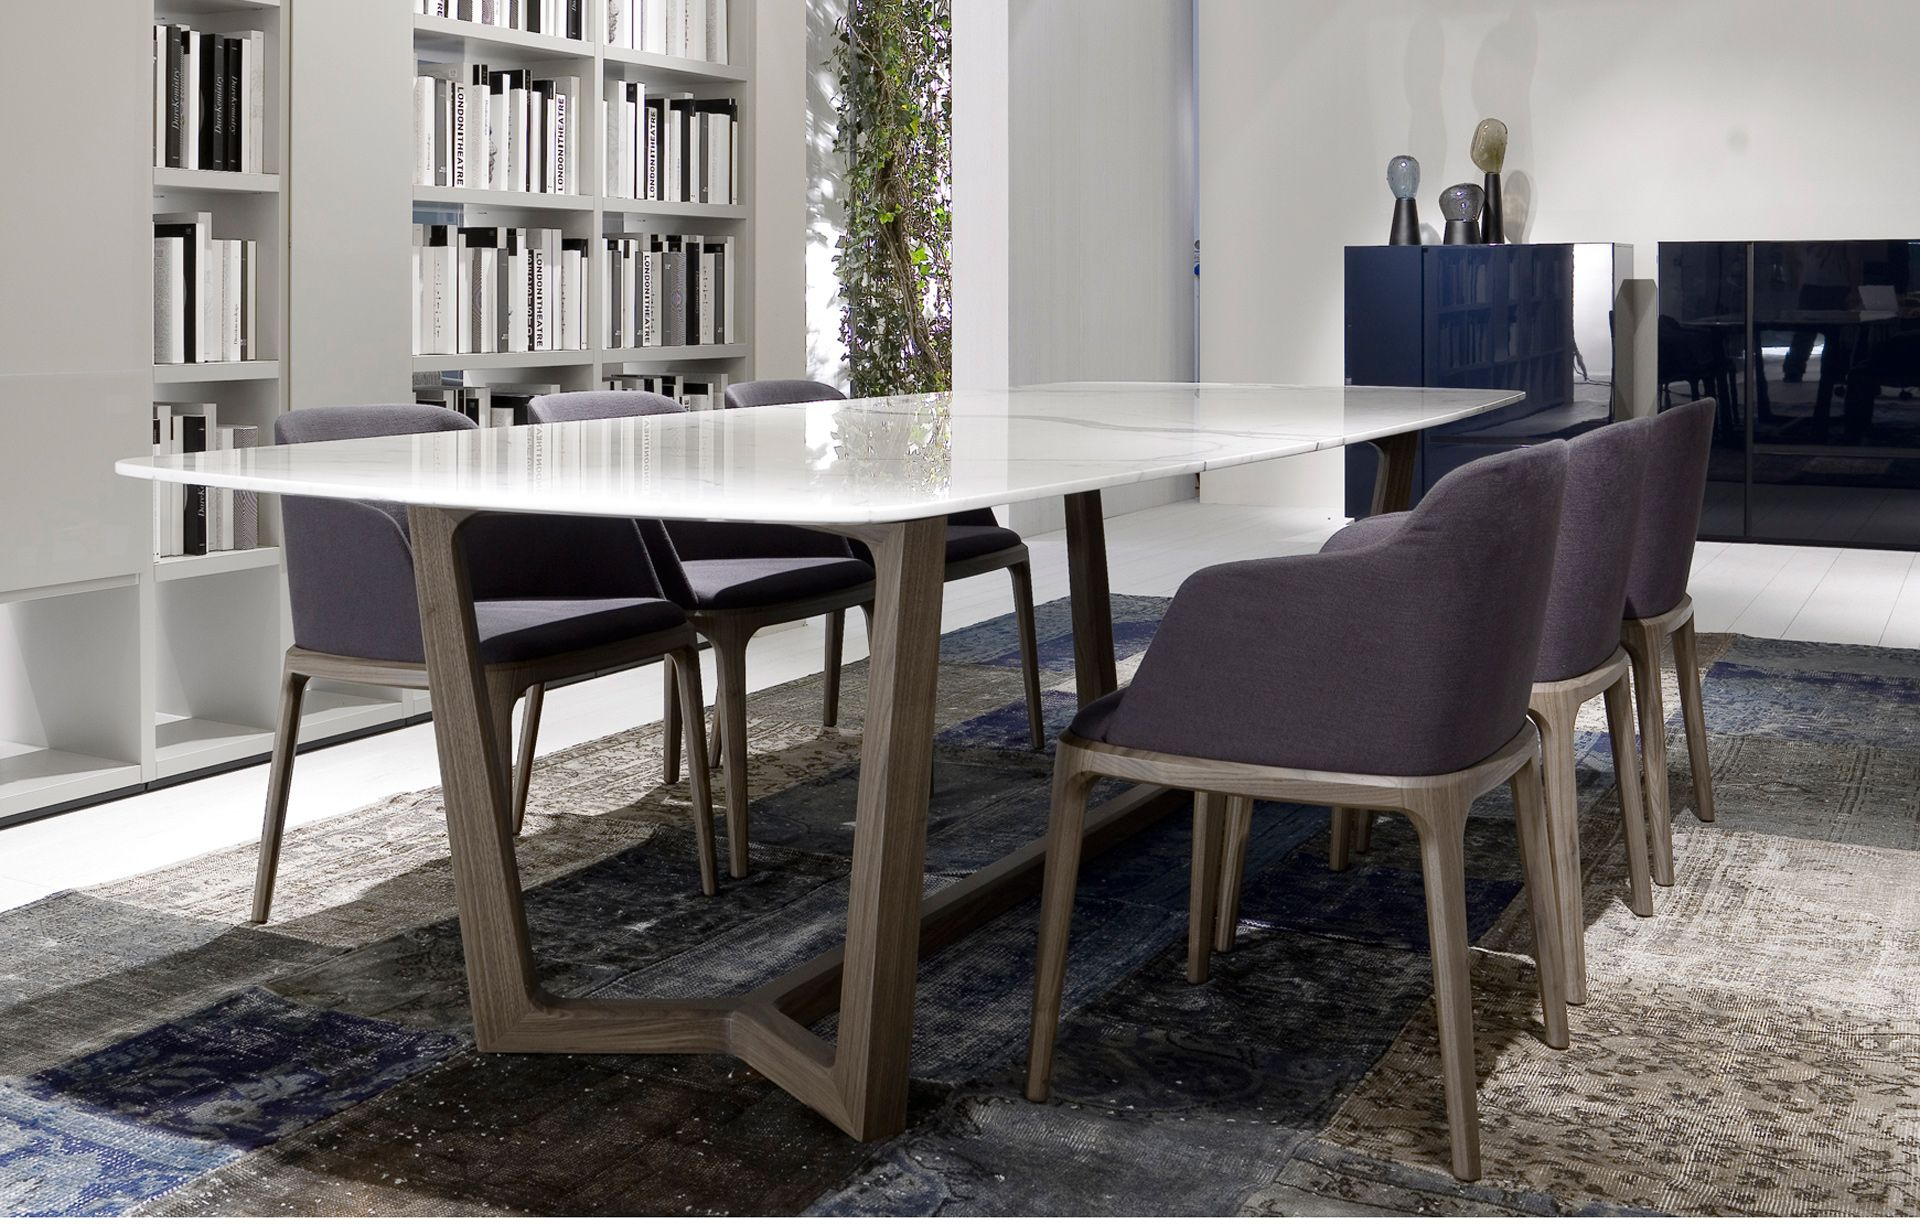 Luxury marble dining table - Stylish White Marble Dining Table And Dark Purple Upholstered Chairs With Gray Oak Pedestal Legs Contemporary Style As Well As Dining Table Ideas Plus